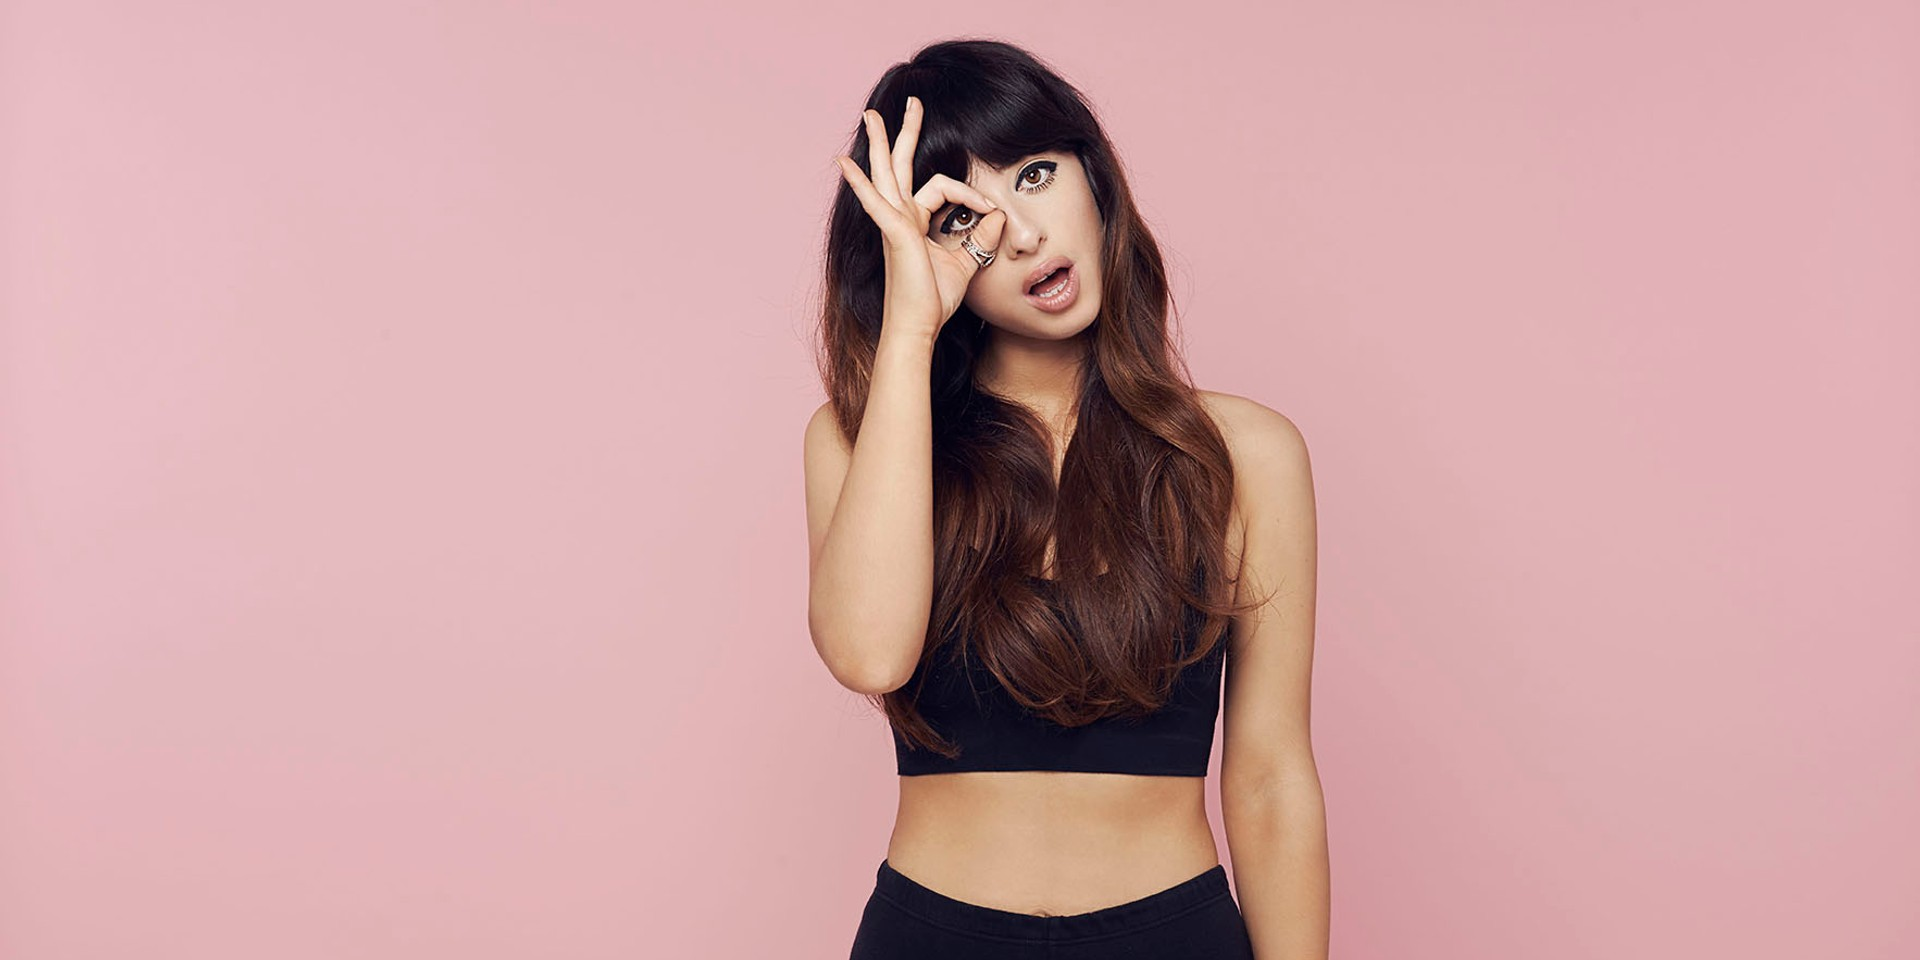 ALBUM REVIEW: Foxes - All I Need